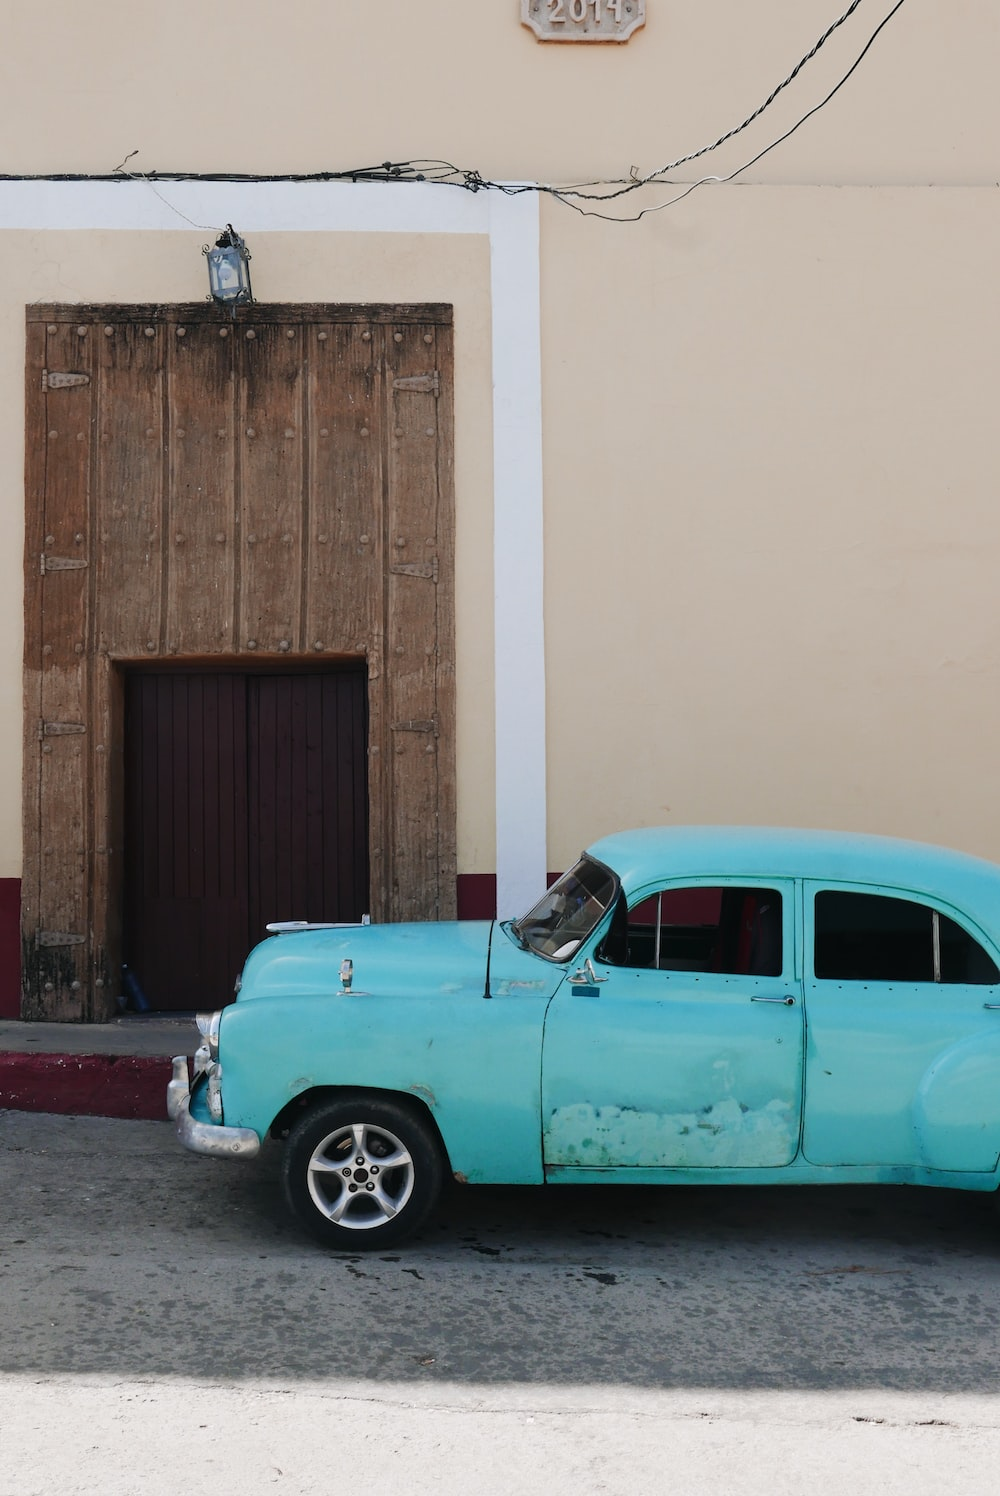 classic teal car parked beside the road near closed French doors